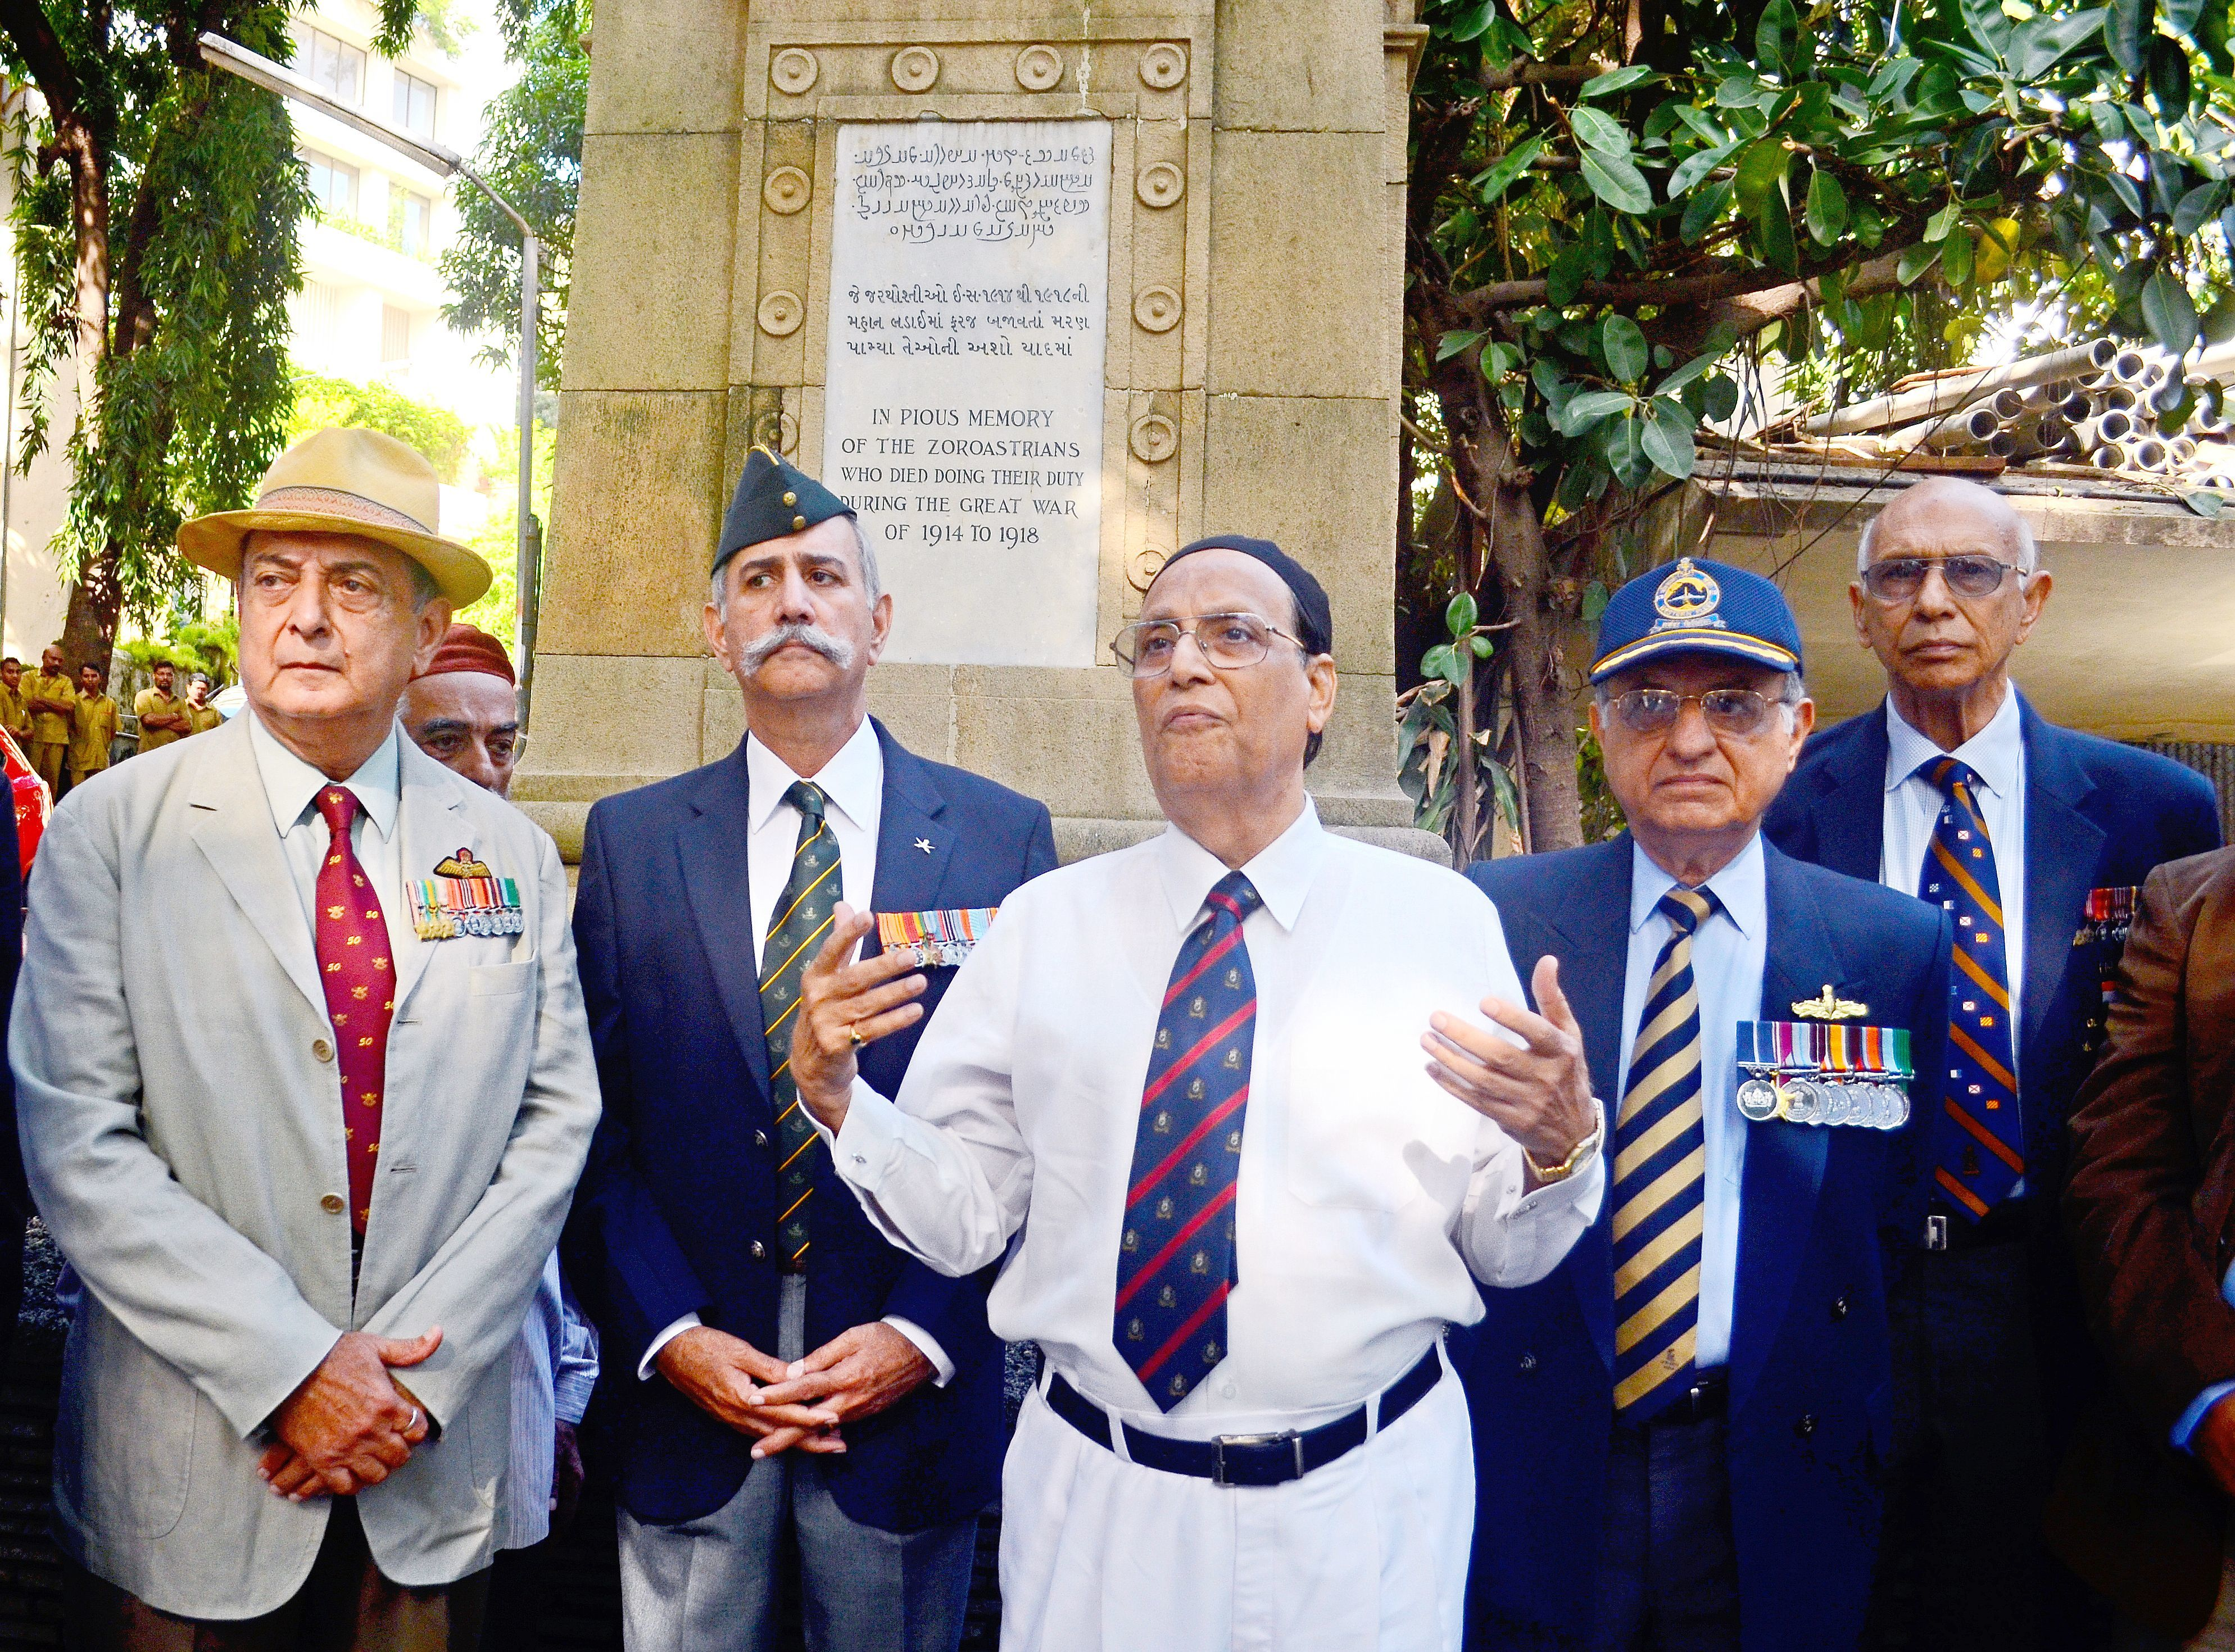 """Created """"in pious memory of the Zoroastrians, who died doing their duty during the Great War"""""""